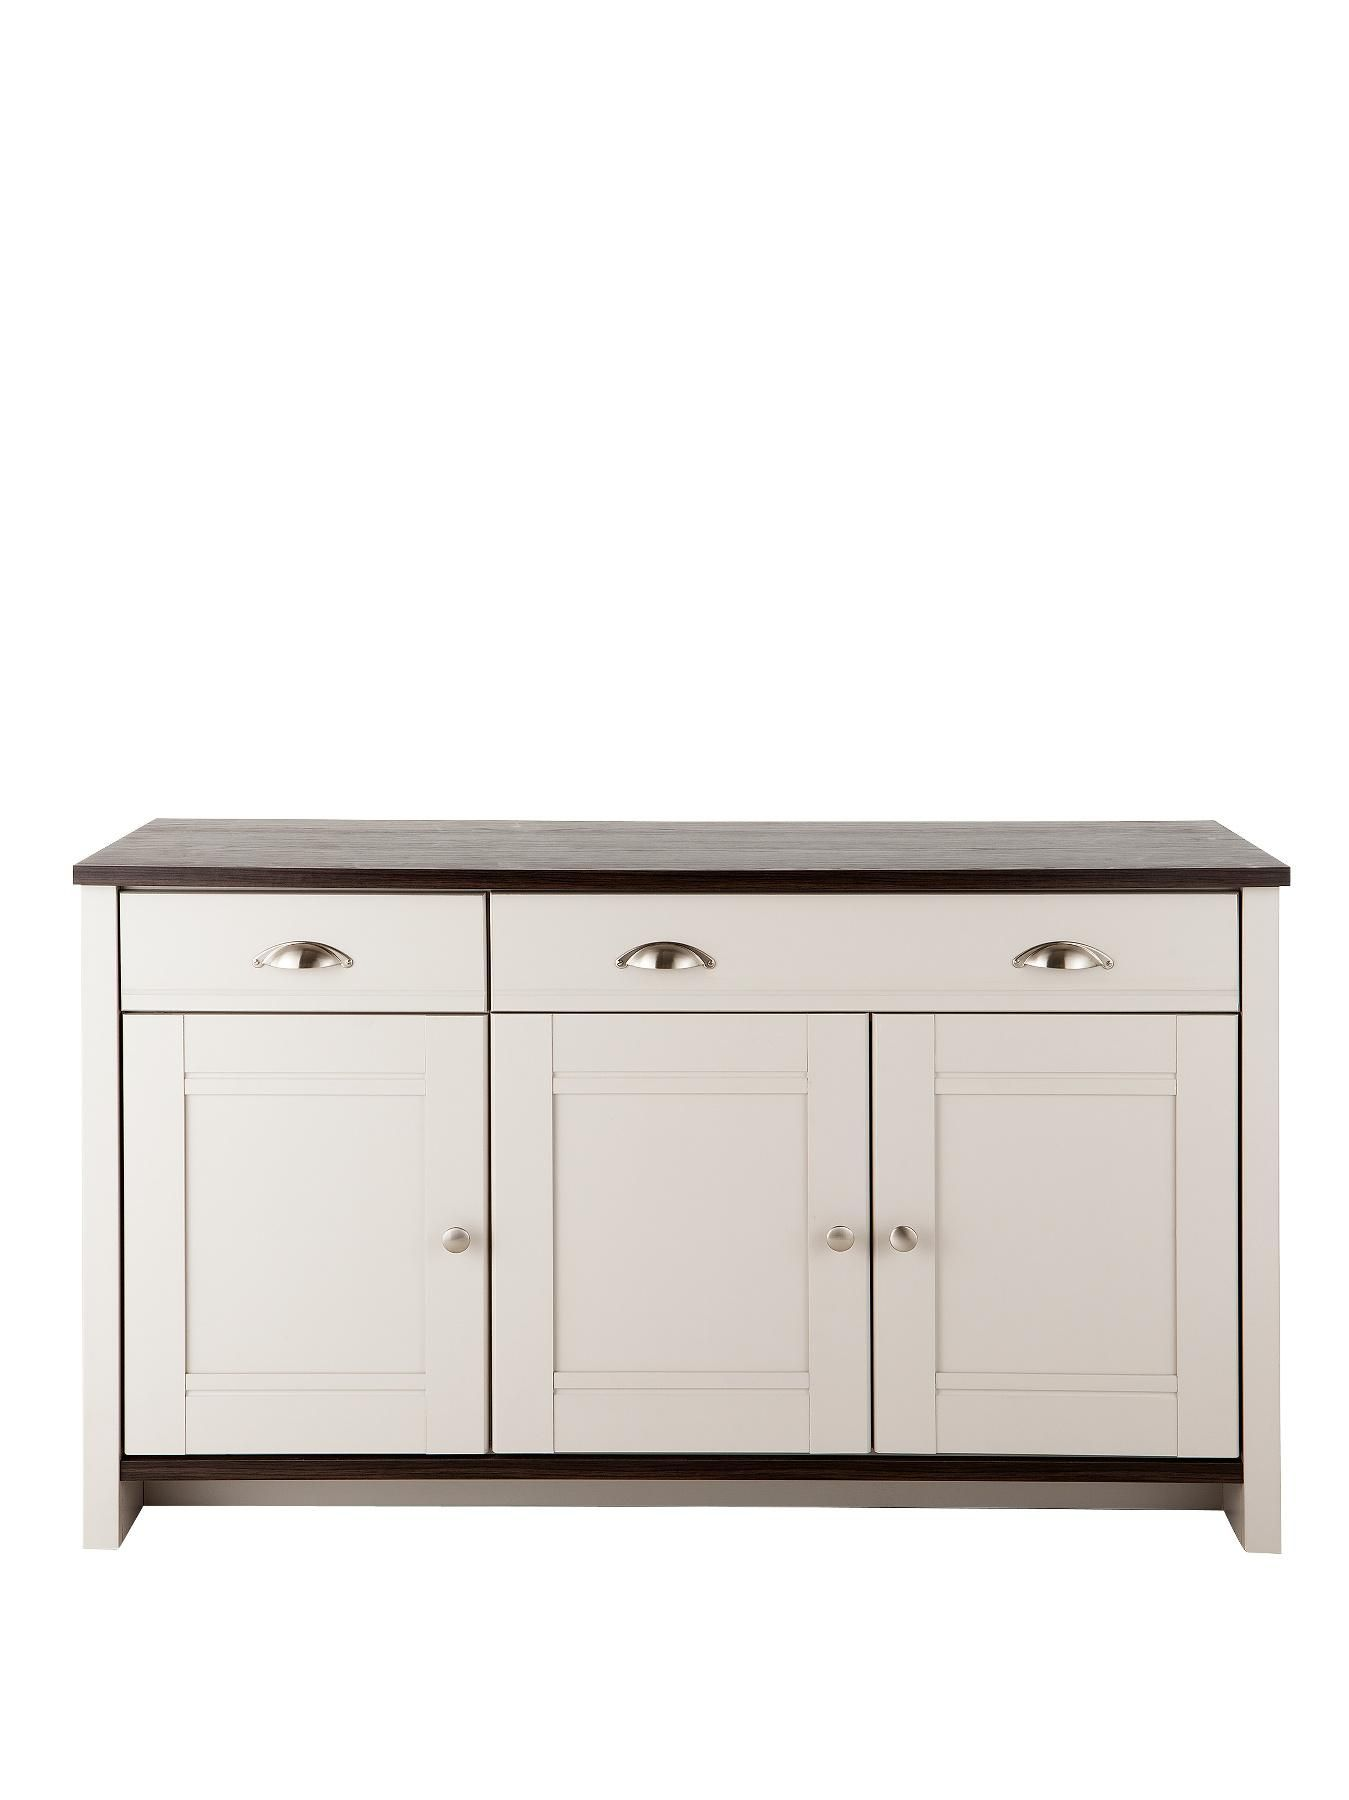 Consort tivoli ready assembled large grey sideboard with - Walnut effect living room furniture ...